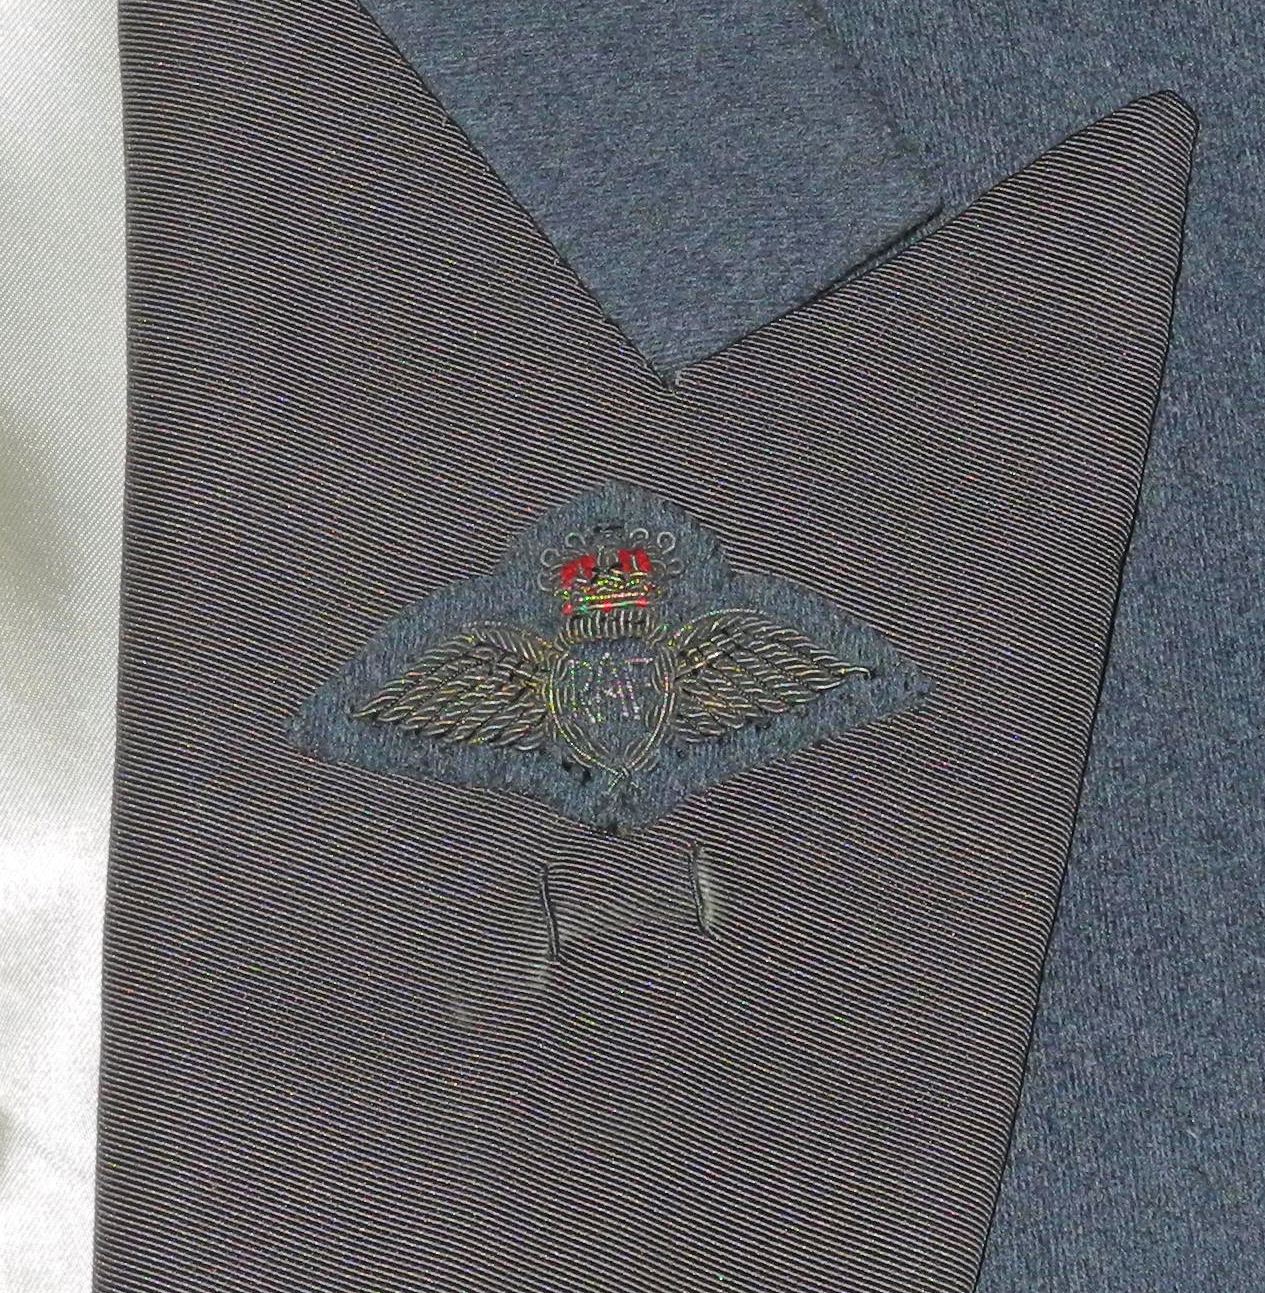 RAF mess dress, complete but unmatched set8780